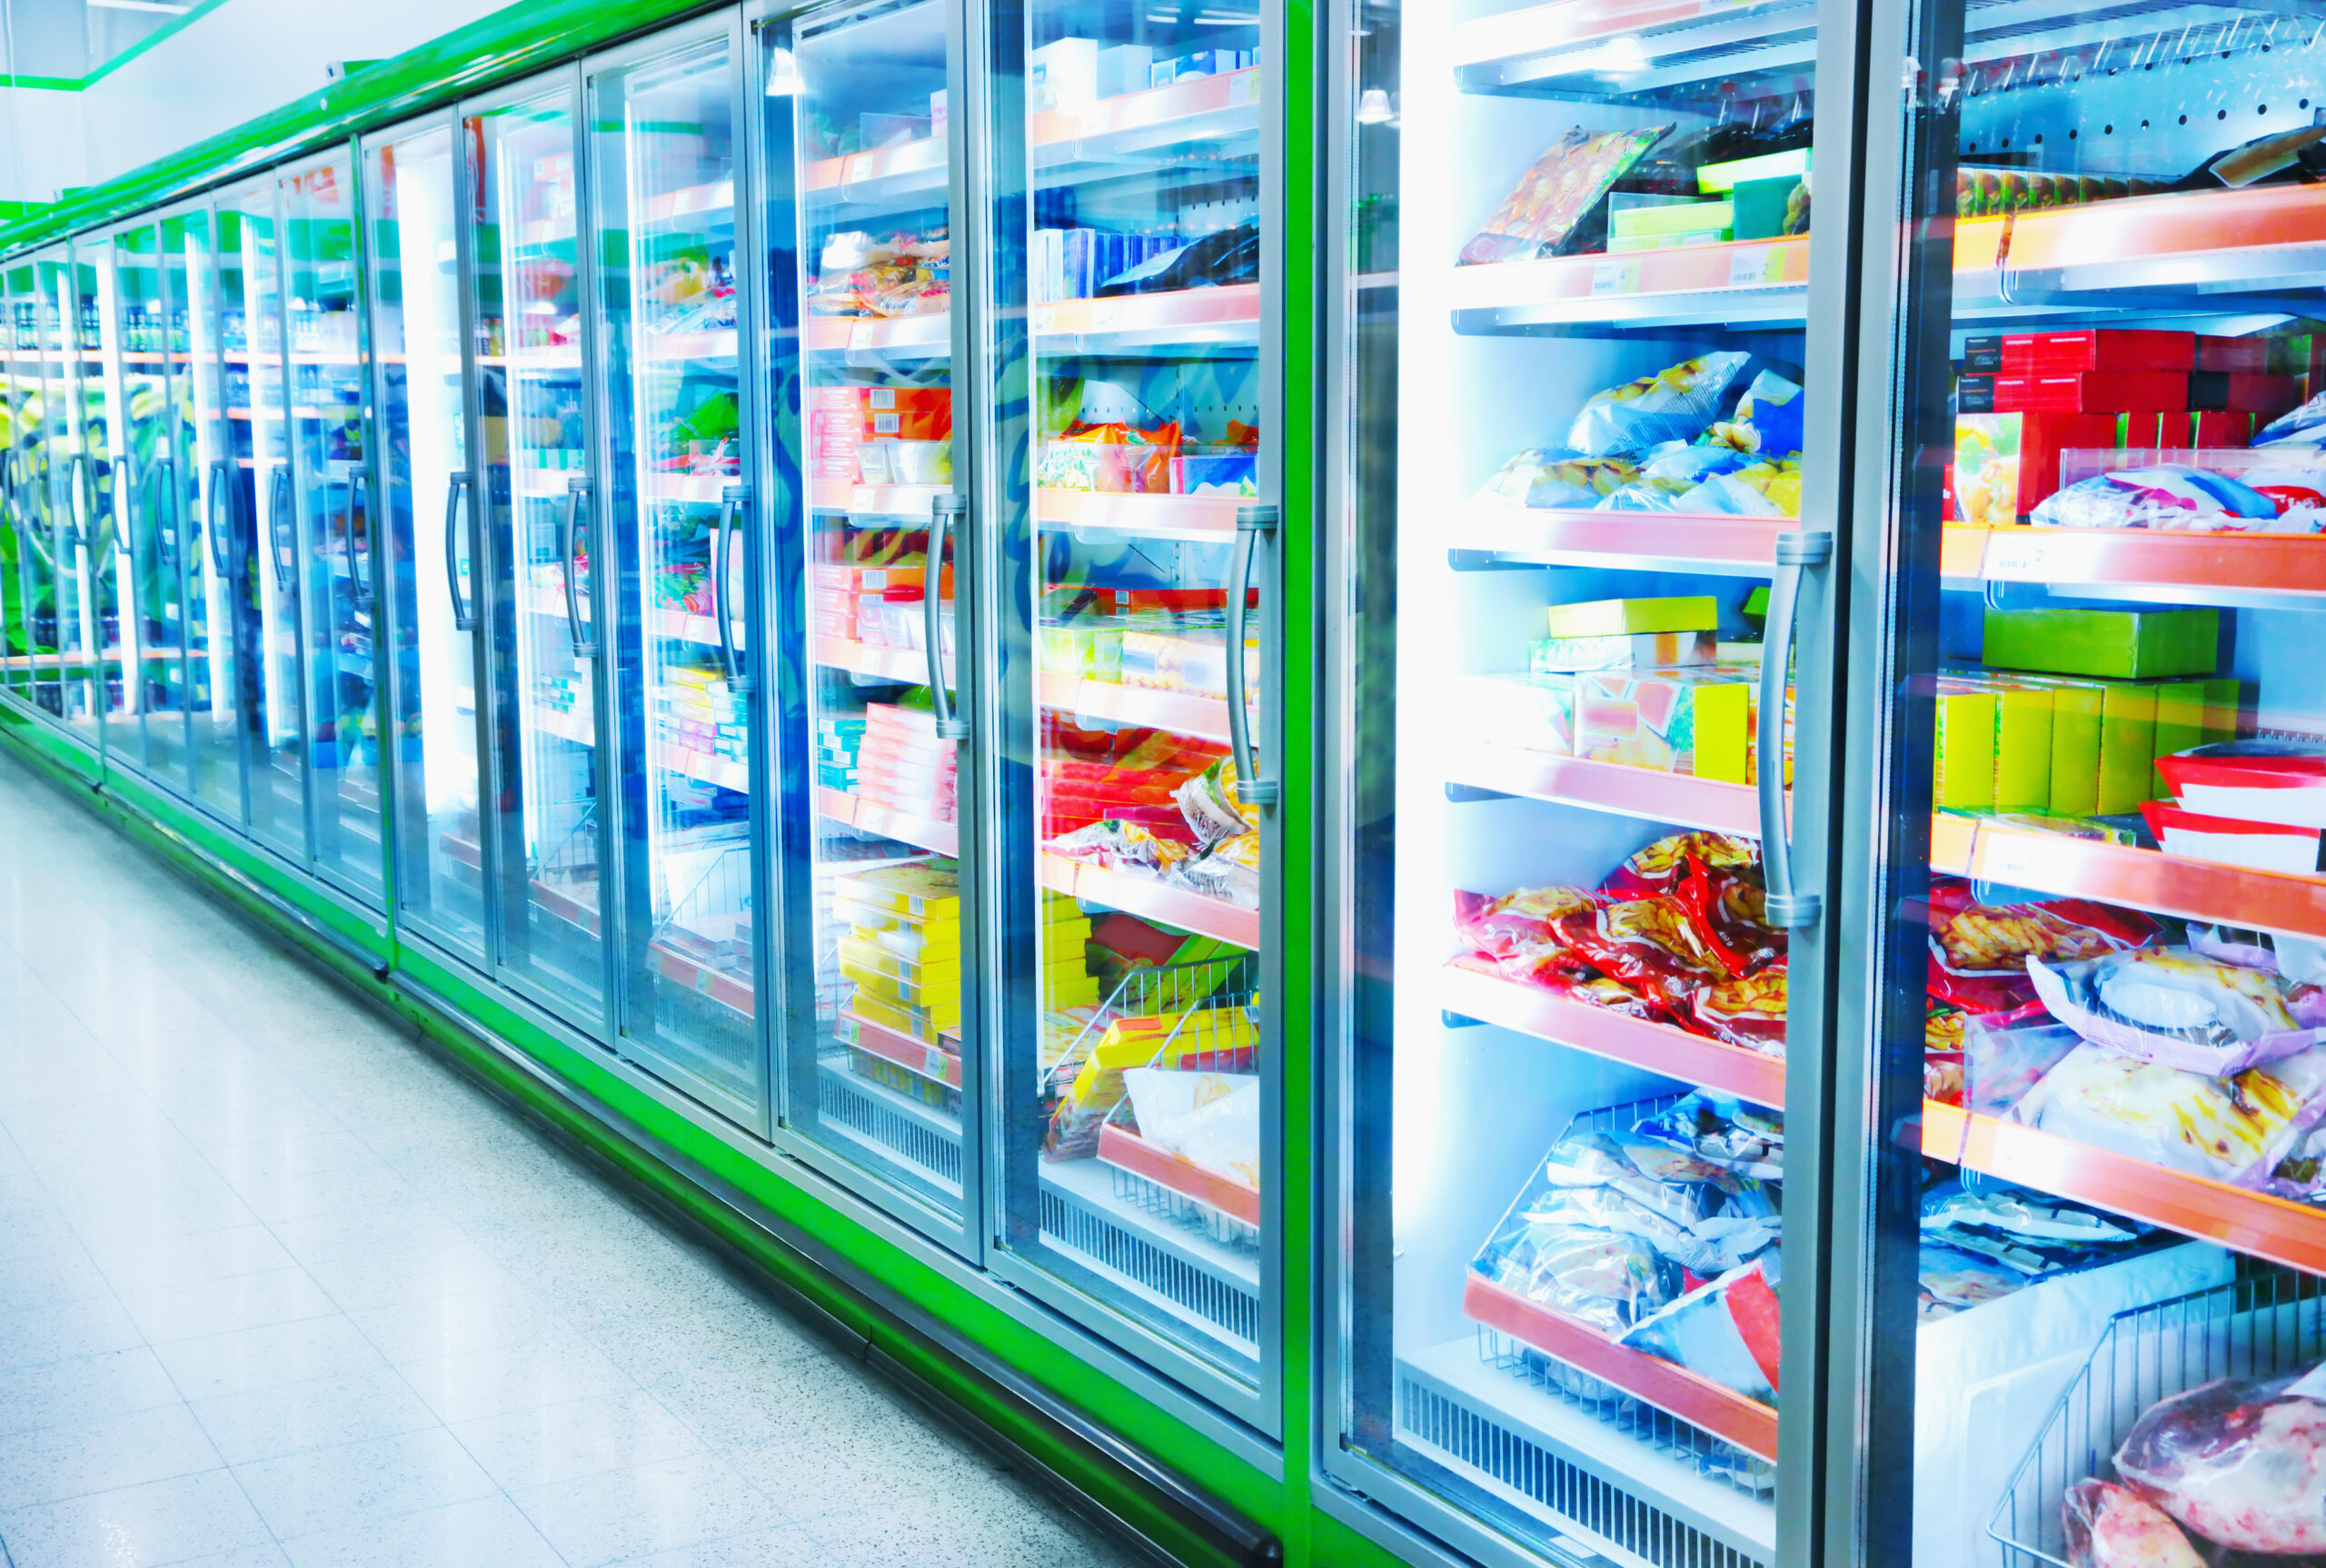 The COOL-R technology reduces costs of food storage